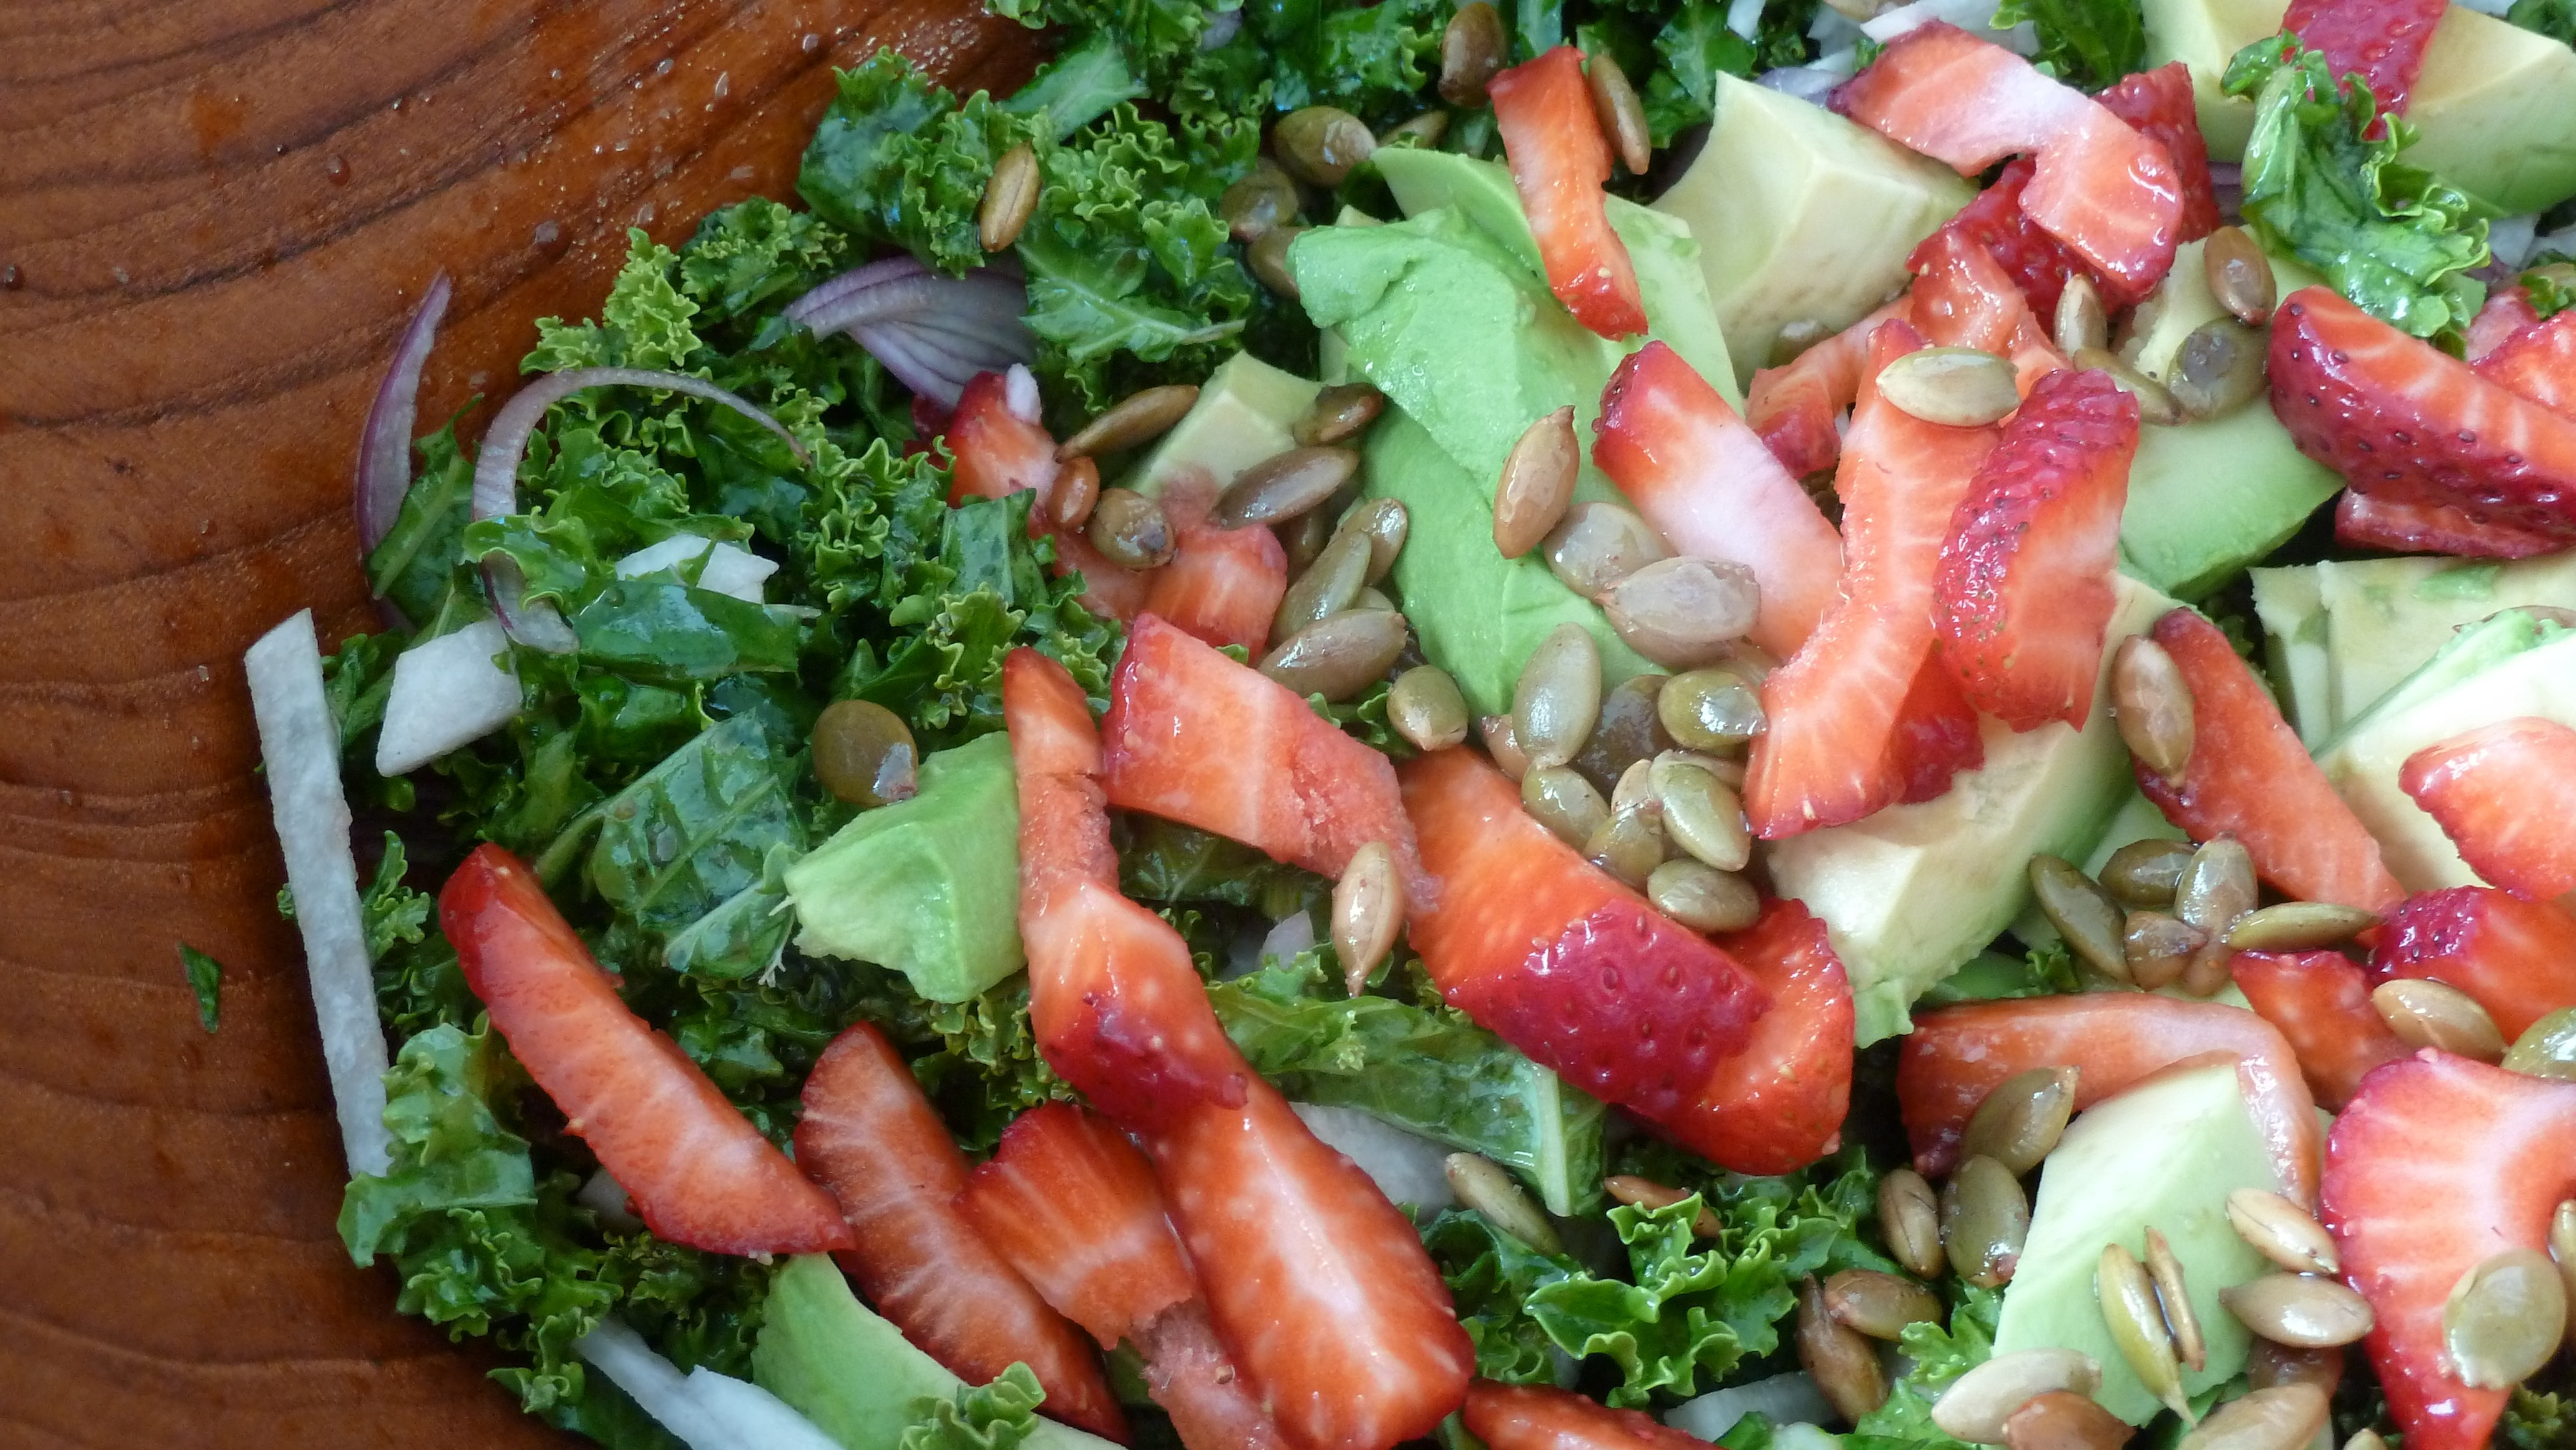 Party in Your Mouth Summer Avocado and Kale Salad